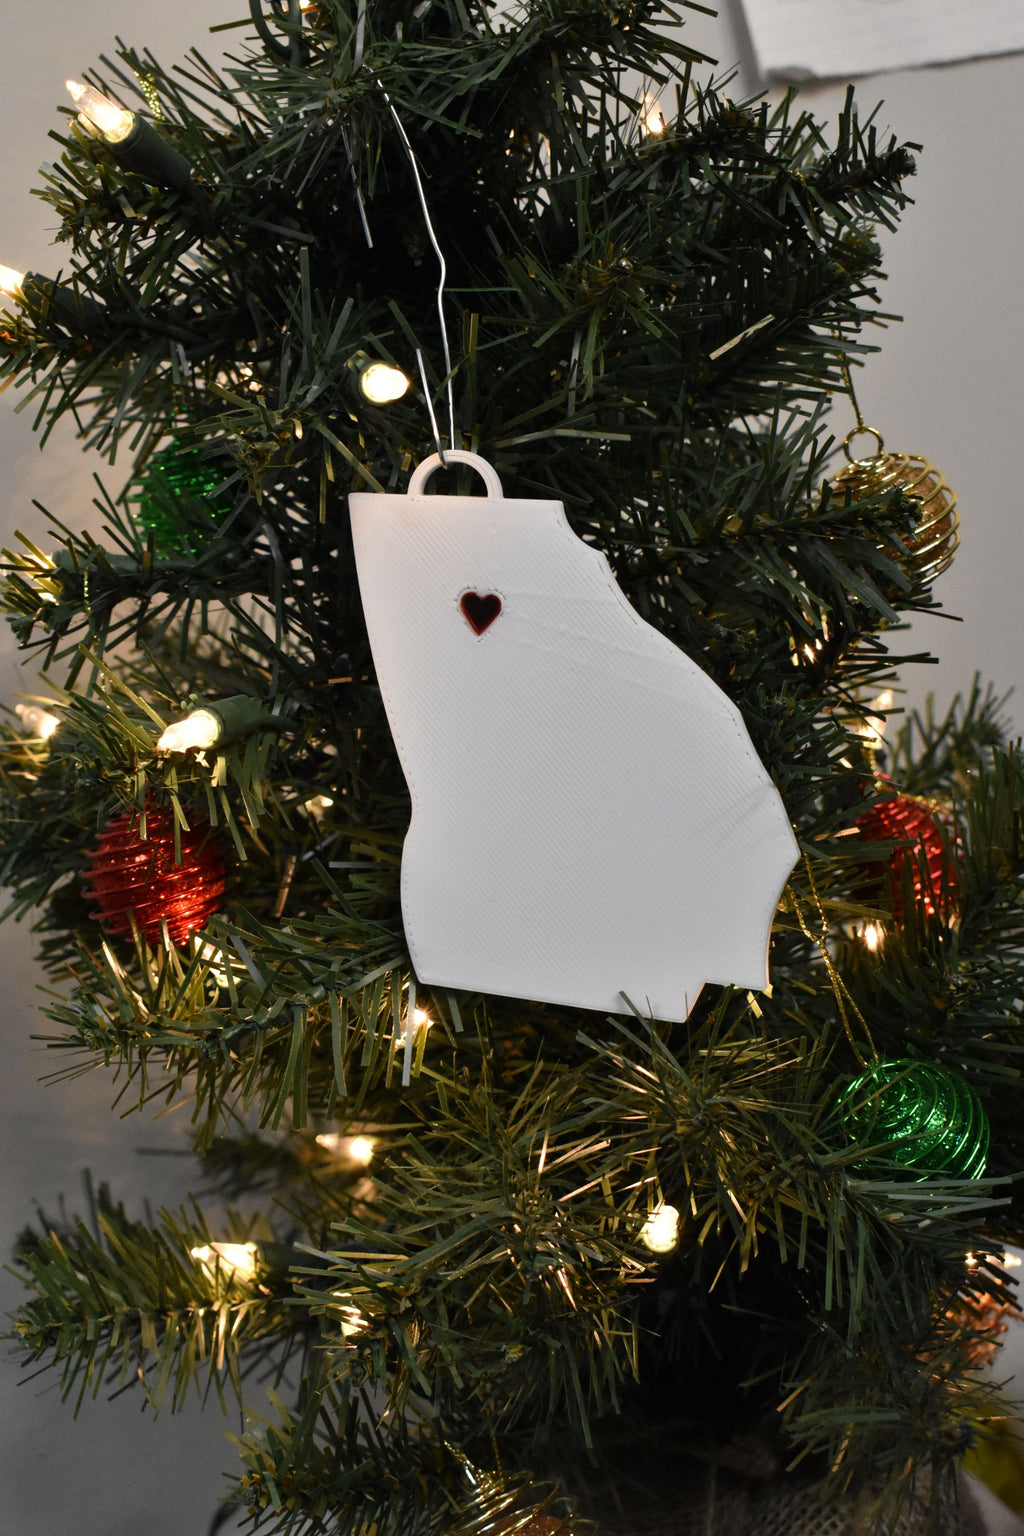 Georgia State Atlanta Heart Ornament Holiday Christmas Decor USA PR244-GA